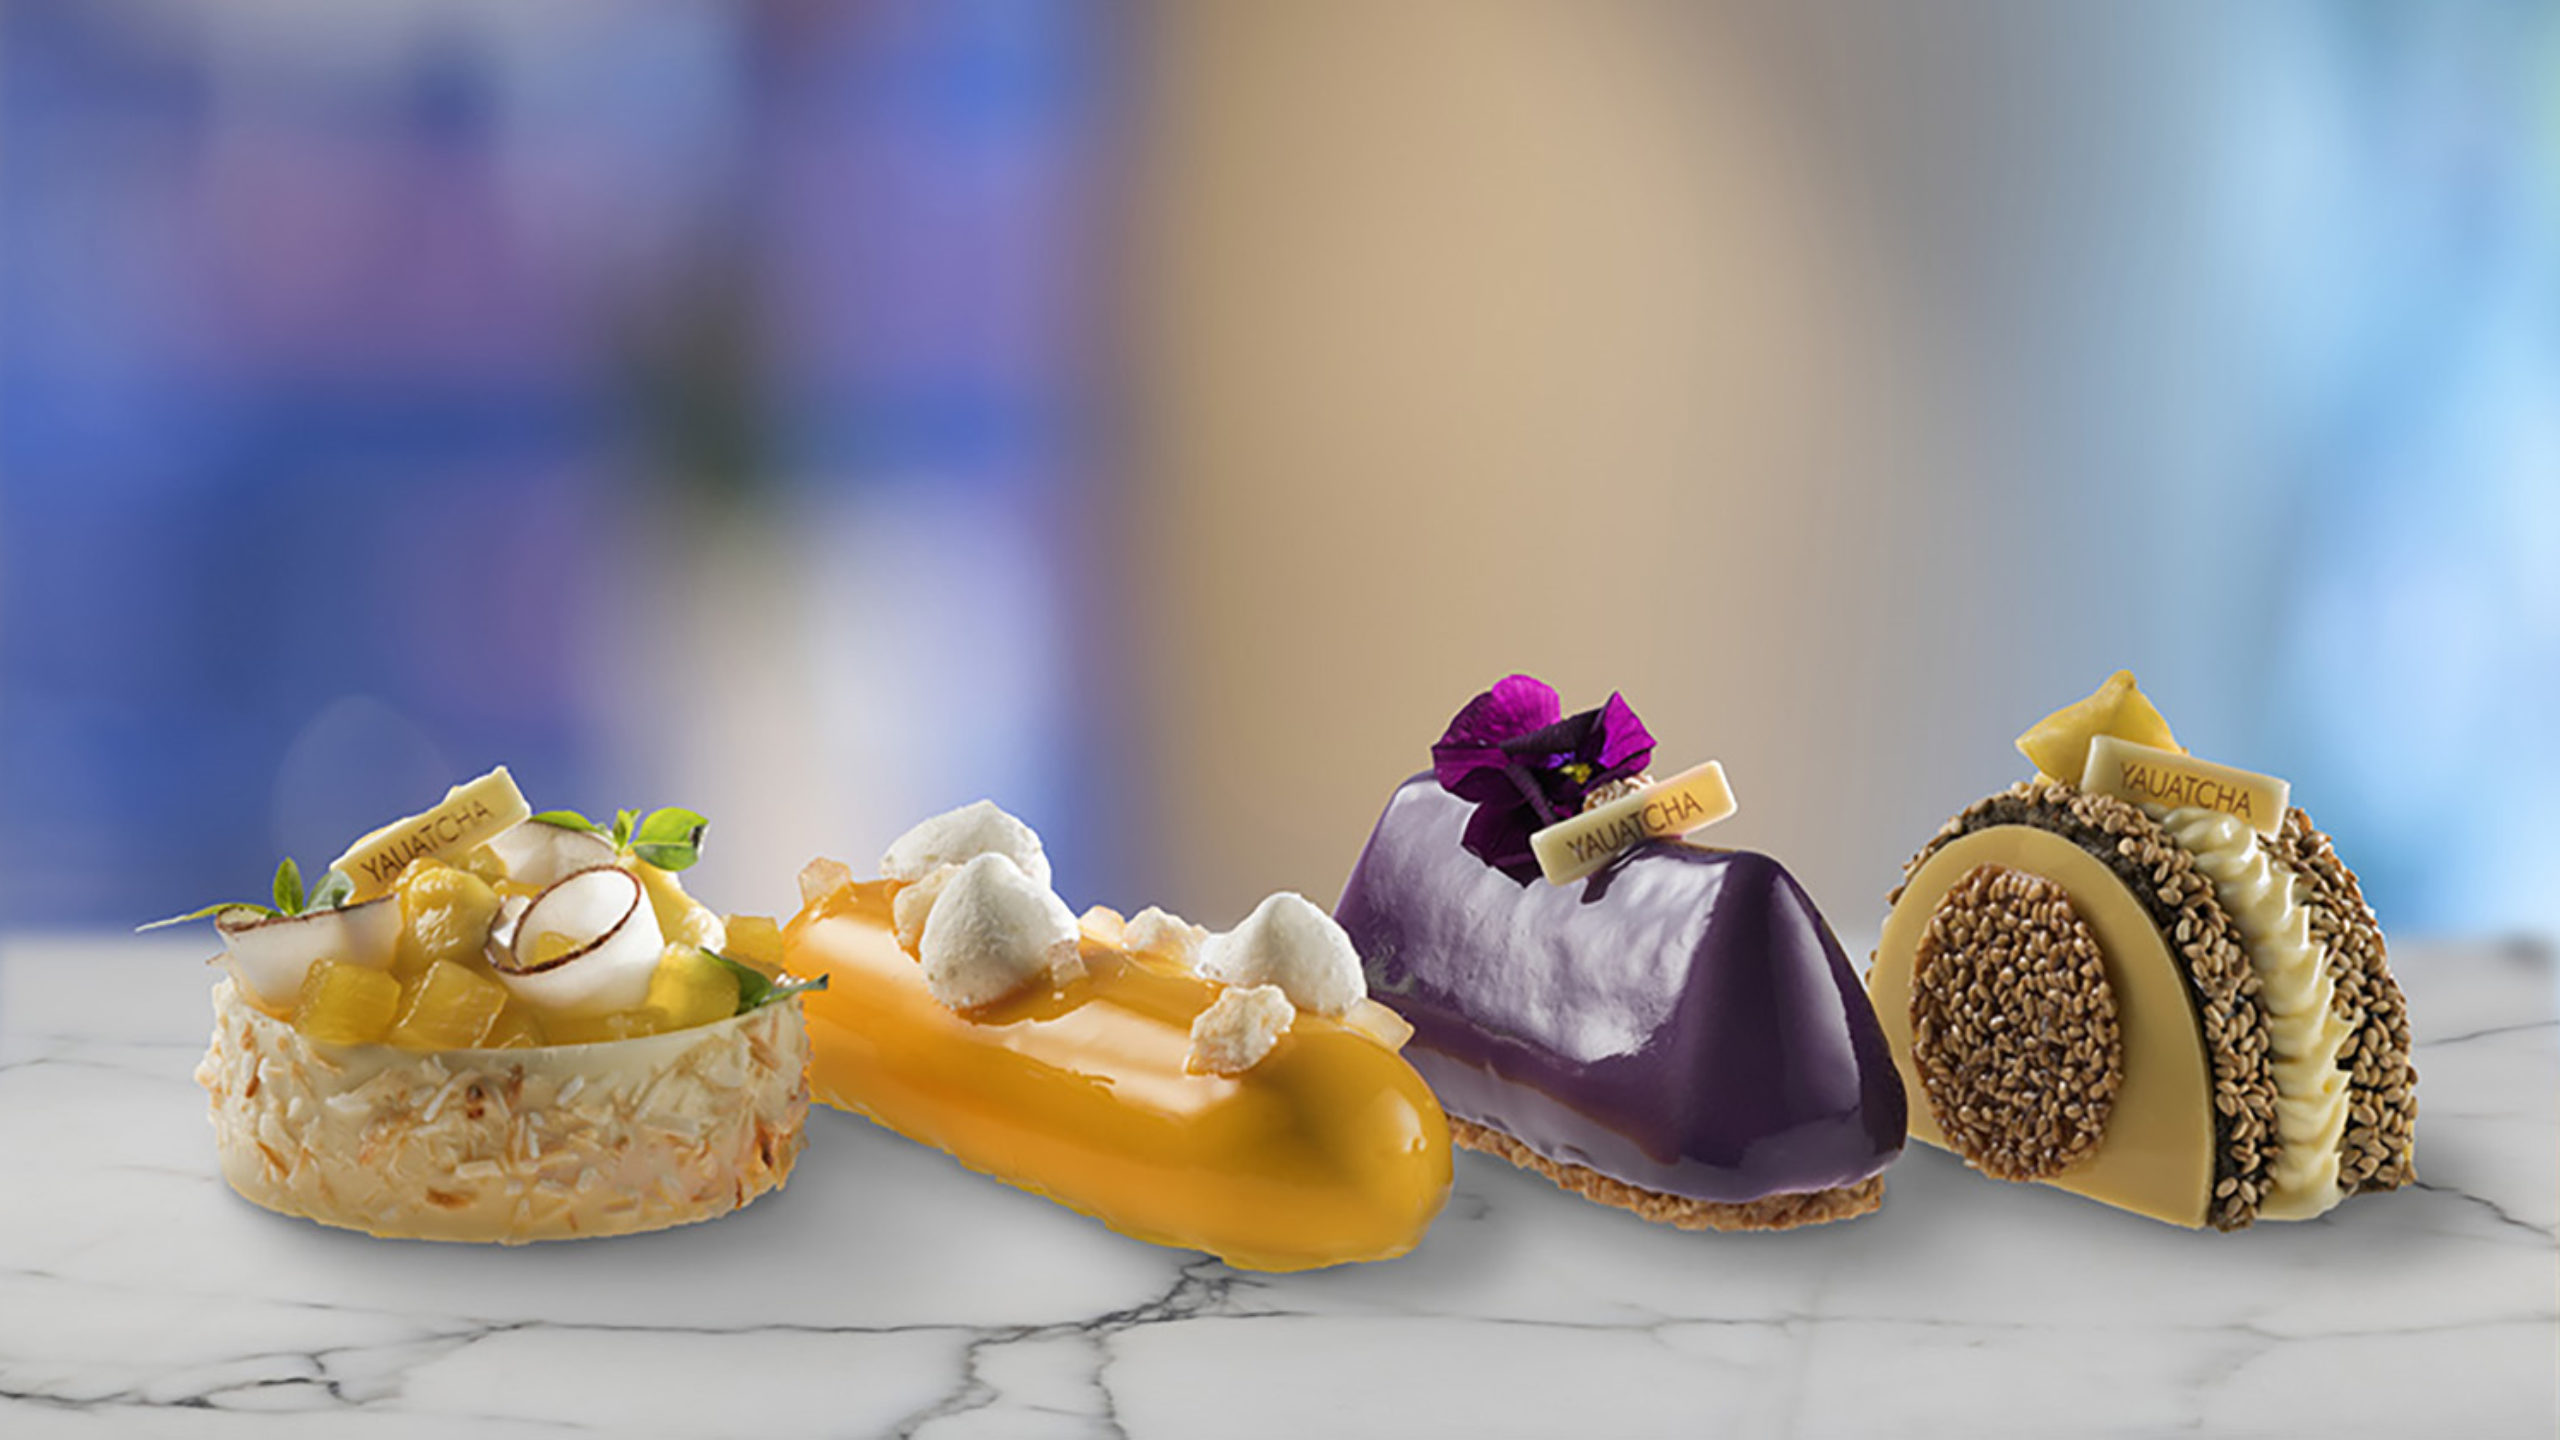 Spring Collection of Desserts